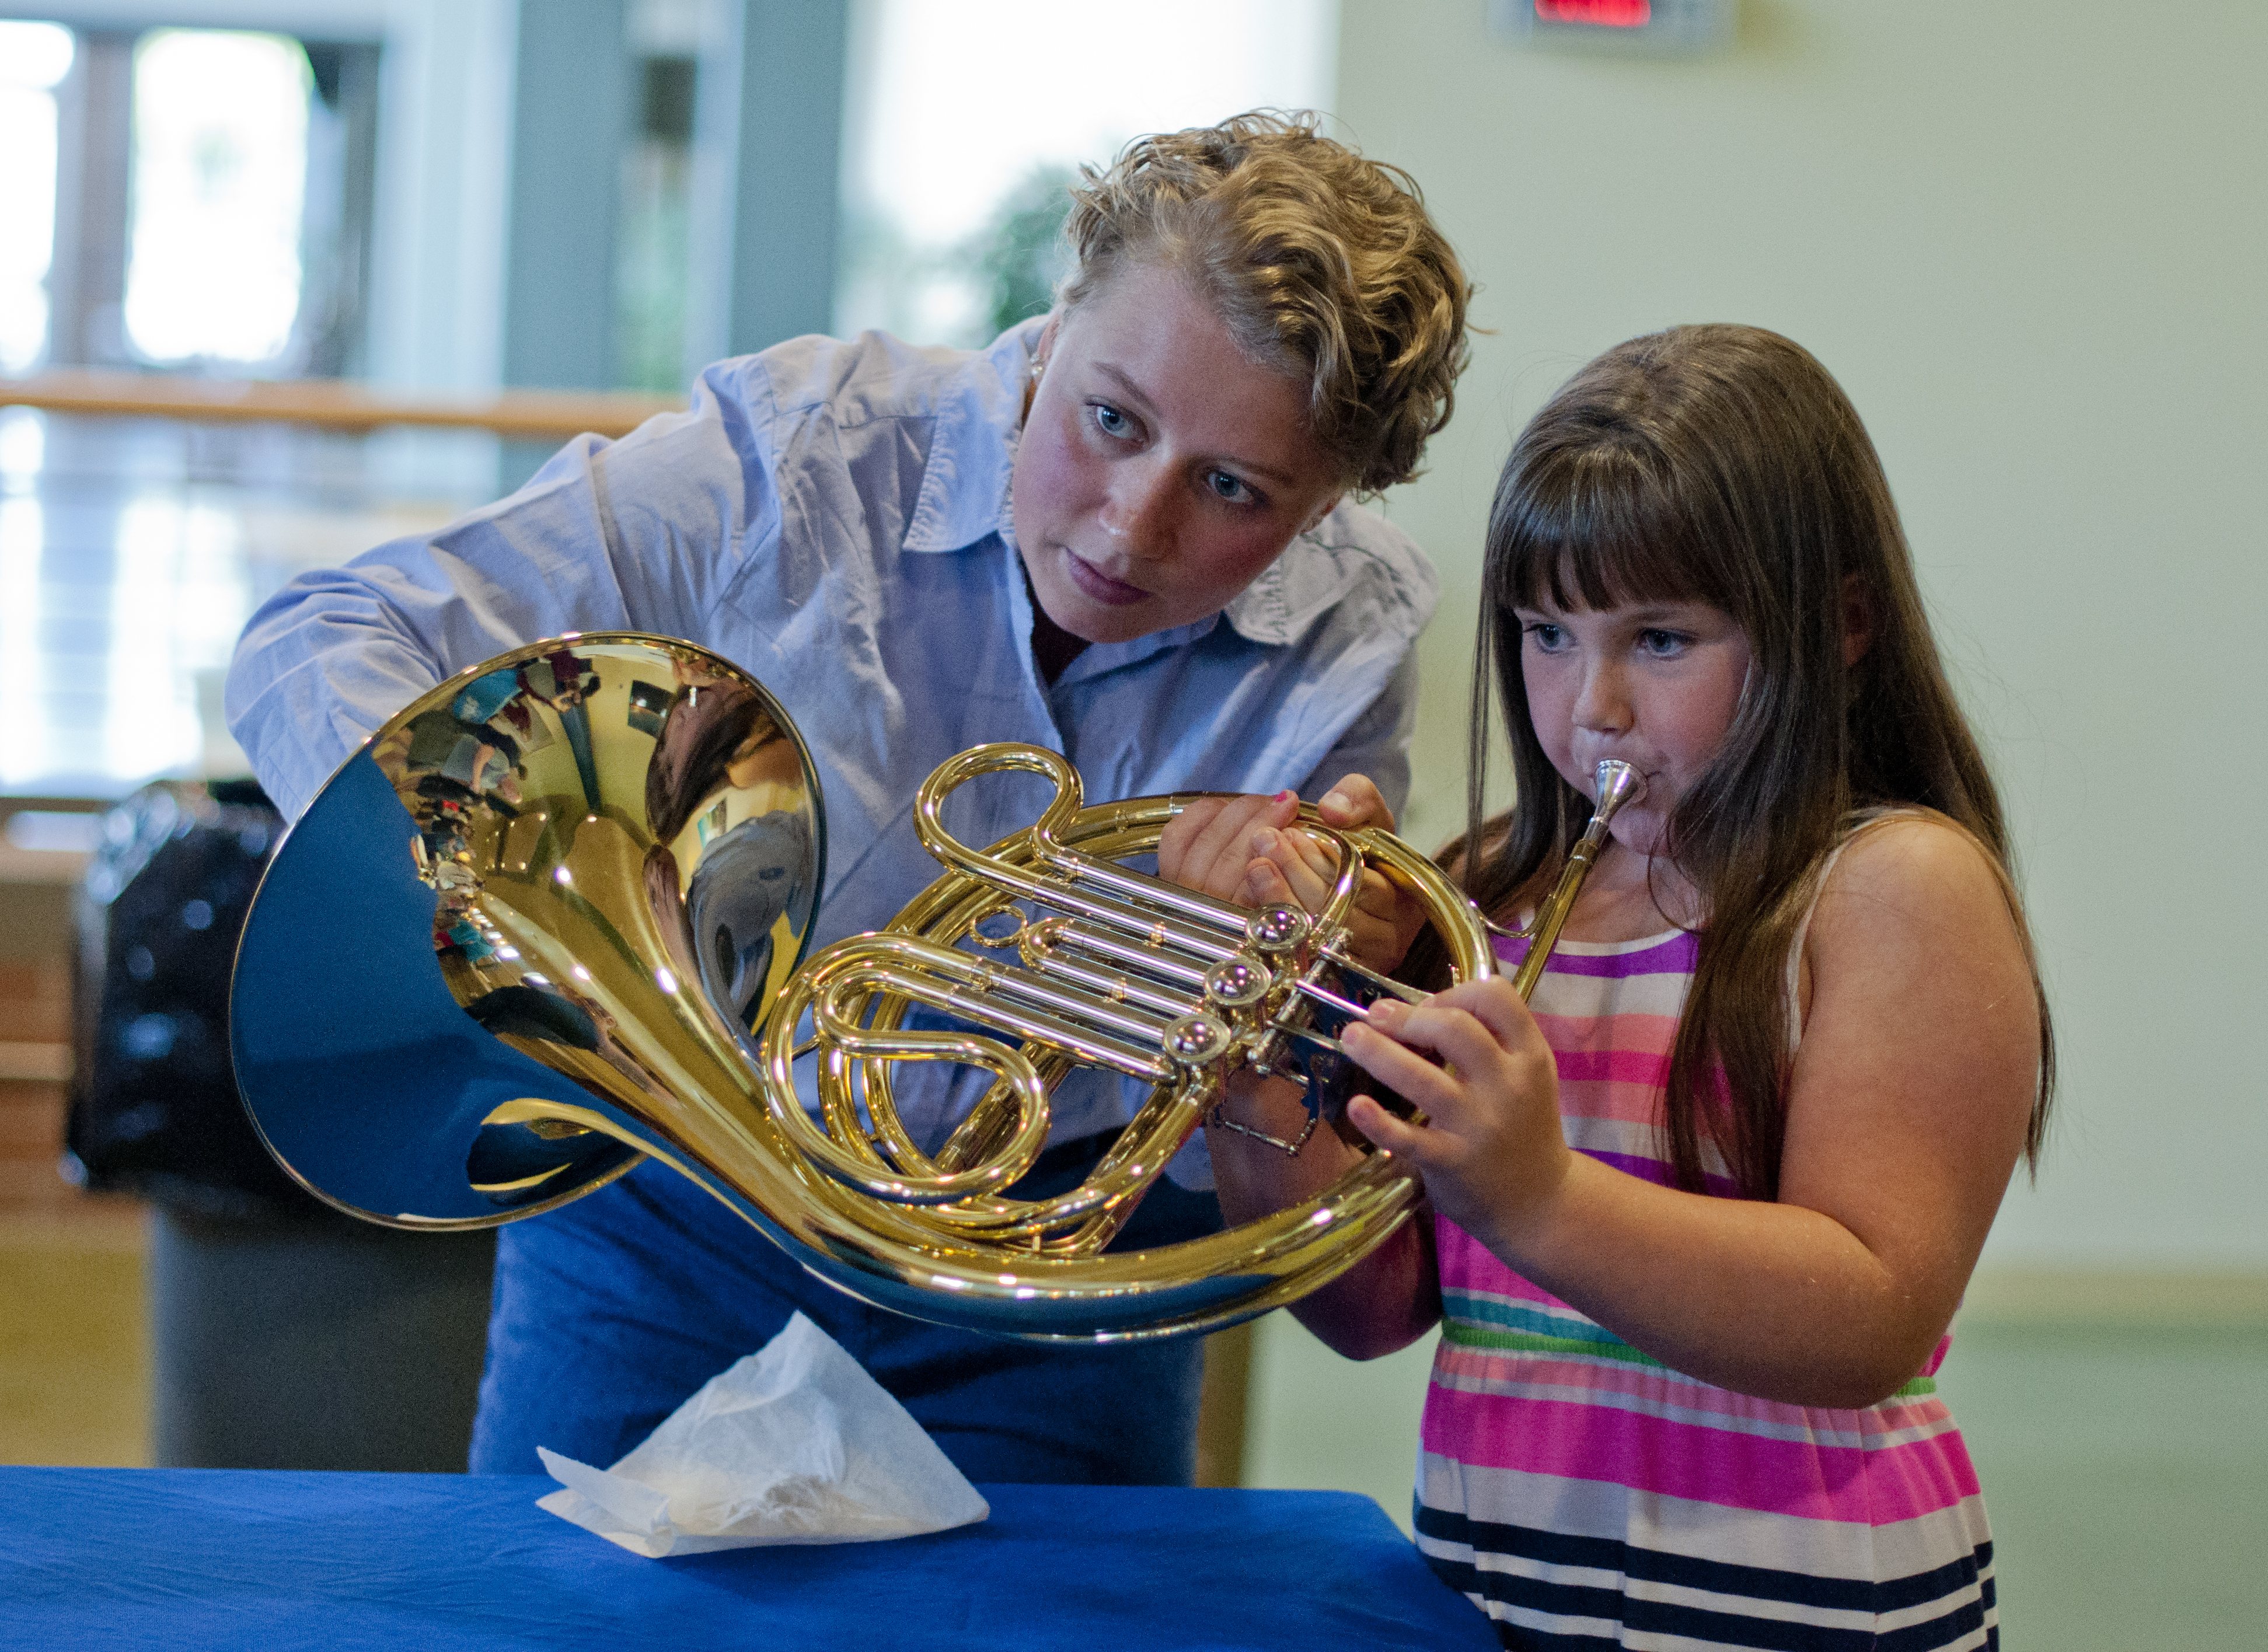 Madeleine sharing the french horn